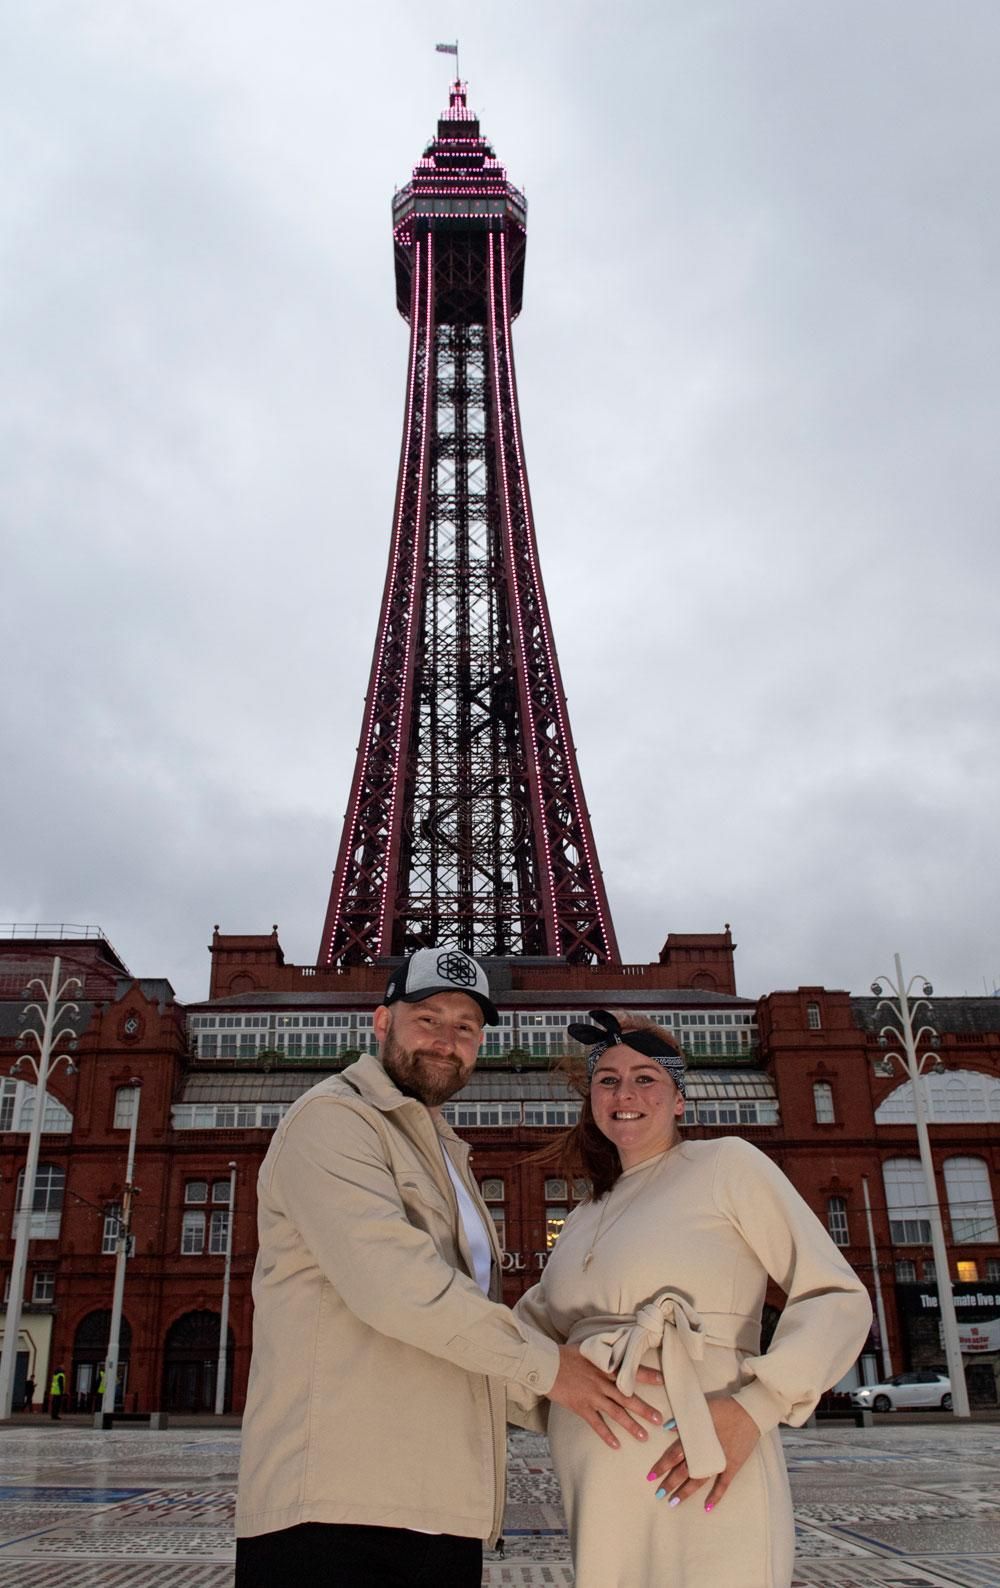 Nick Easton and Amberleigh Duckworth at their gender reveal (Dave Nelson/Visit Blackpool/PA)